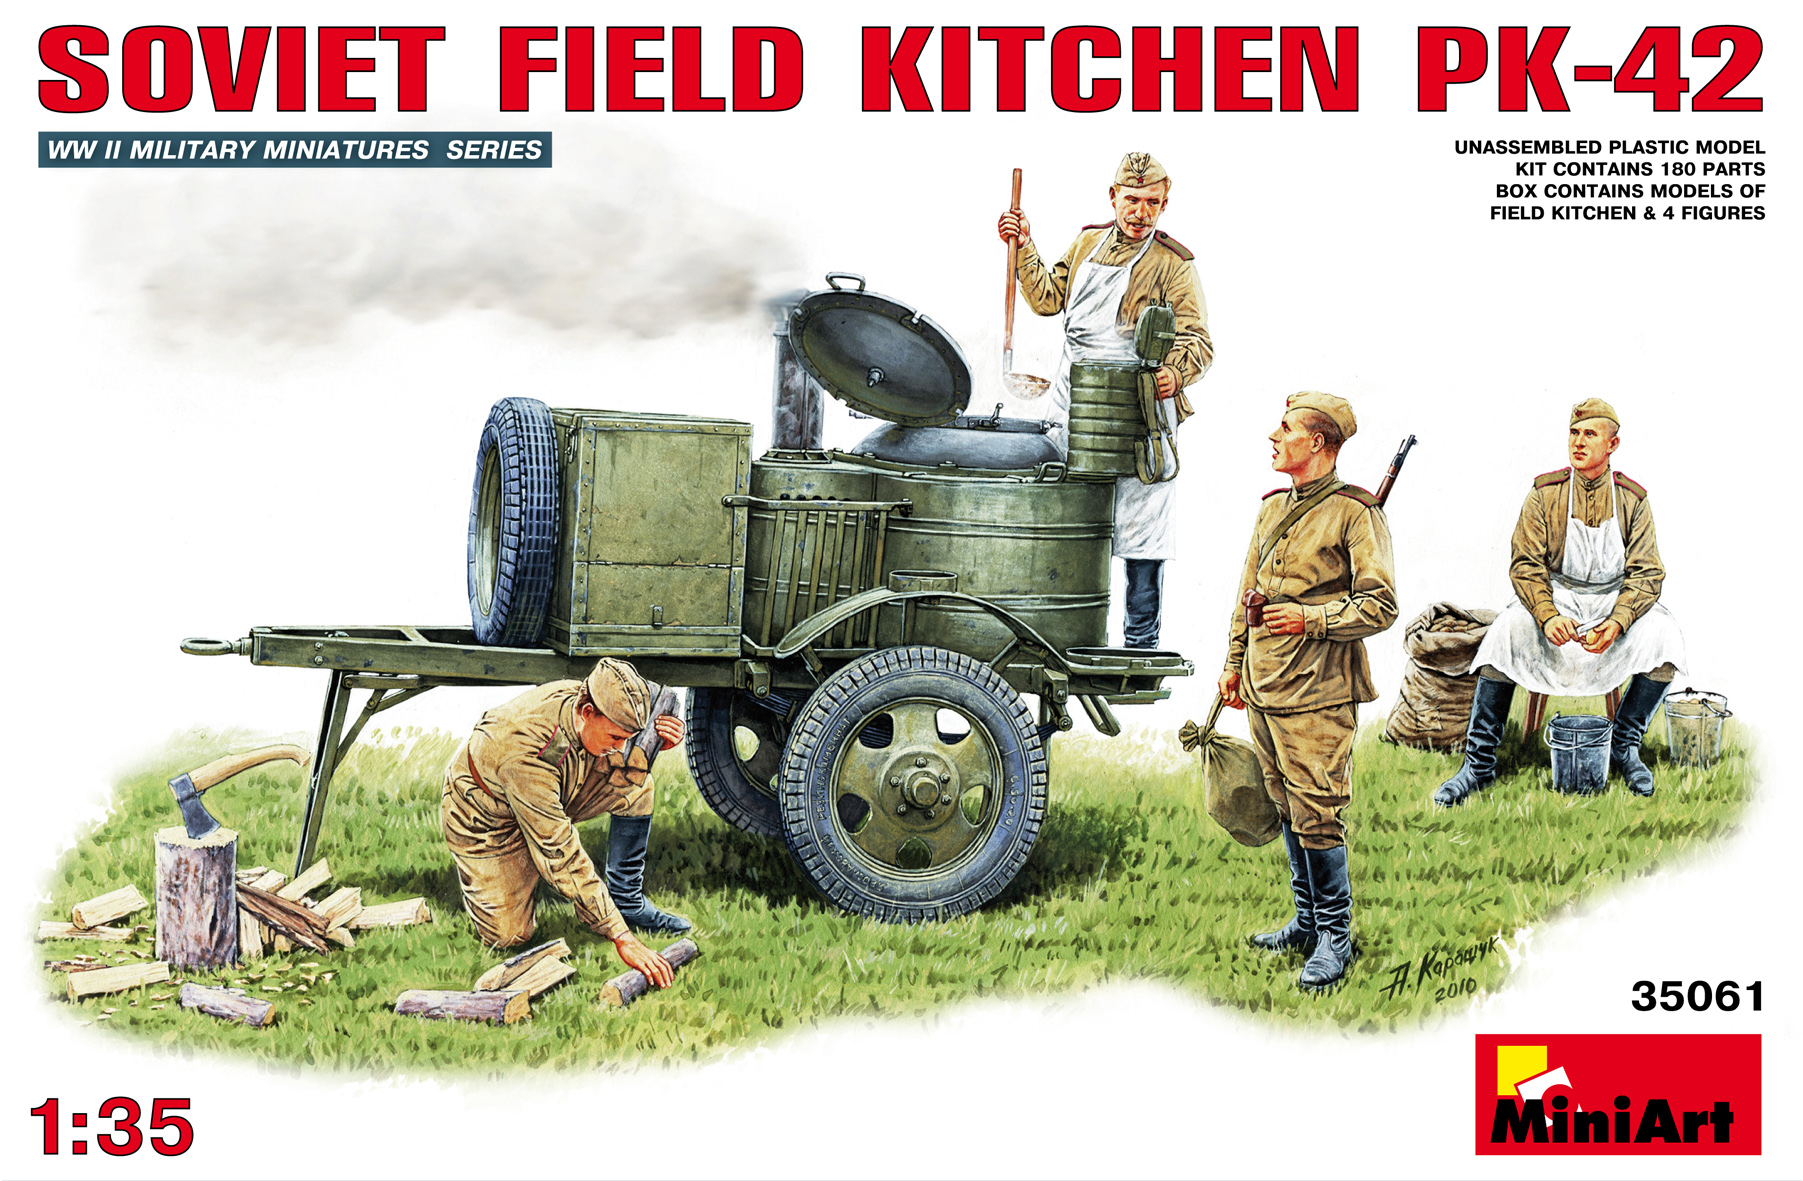 35061 SOVIET FIELD KITCHEN PK-42